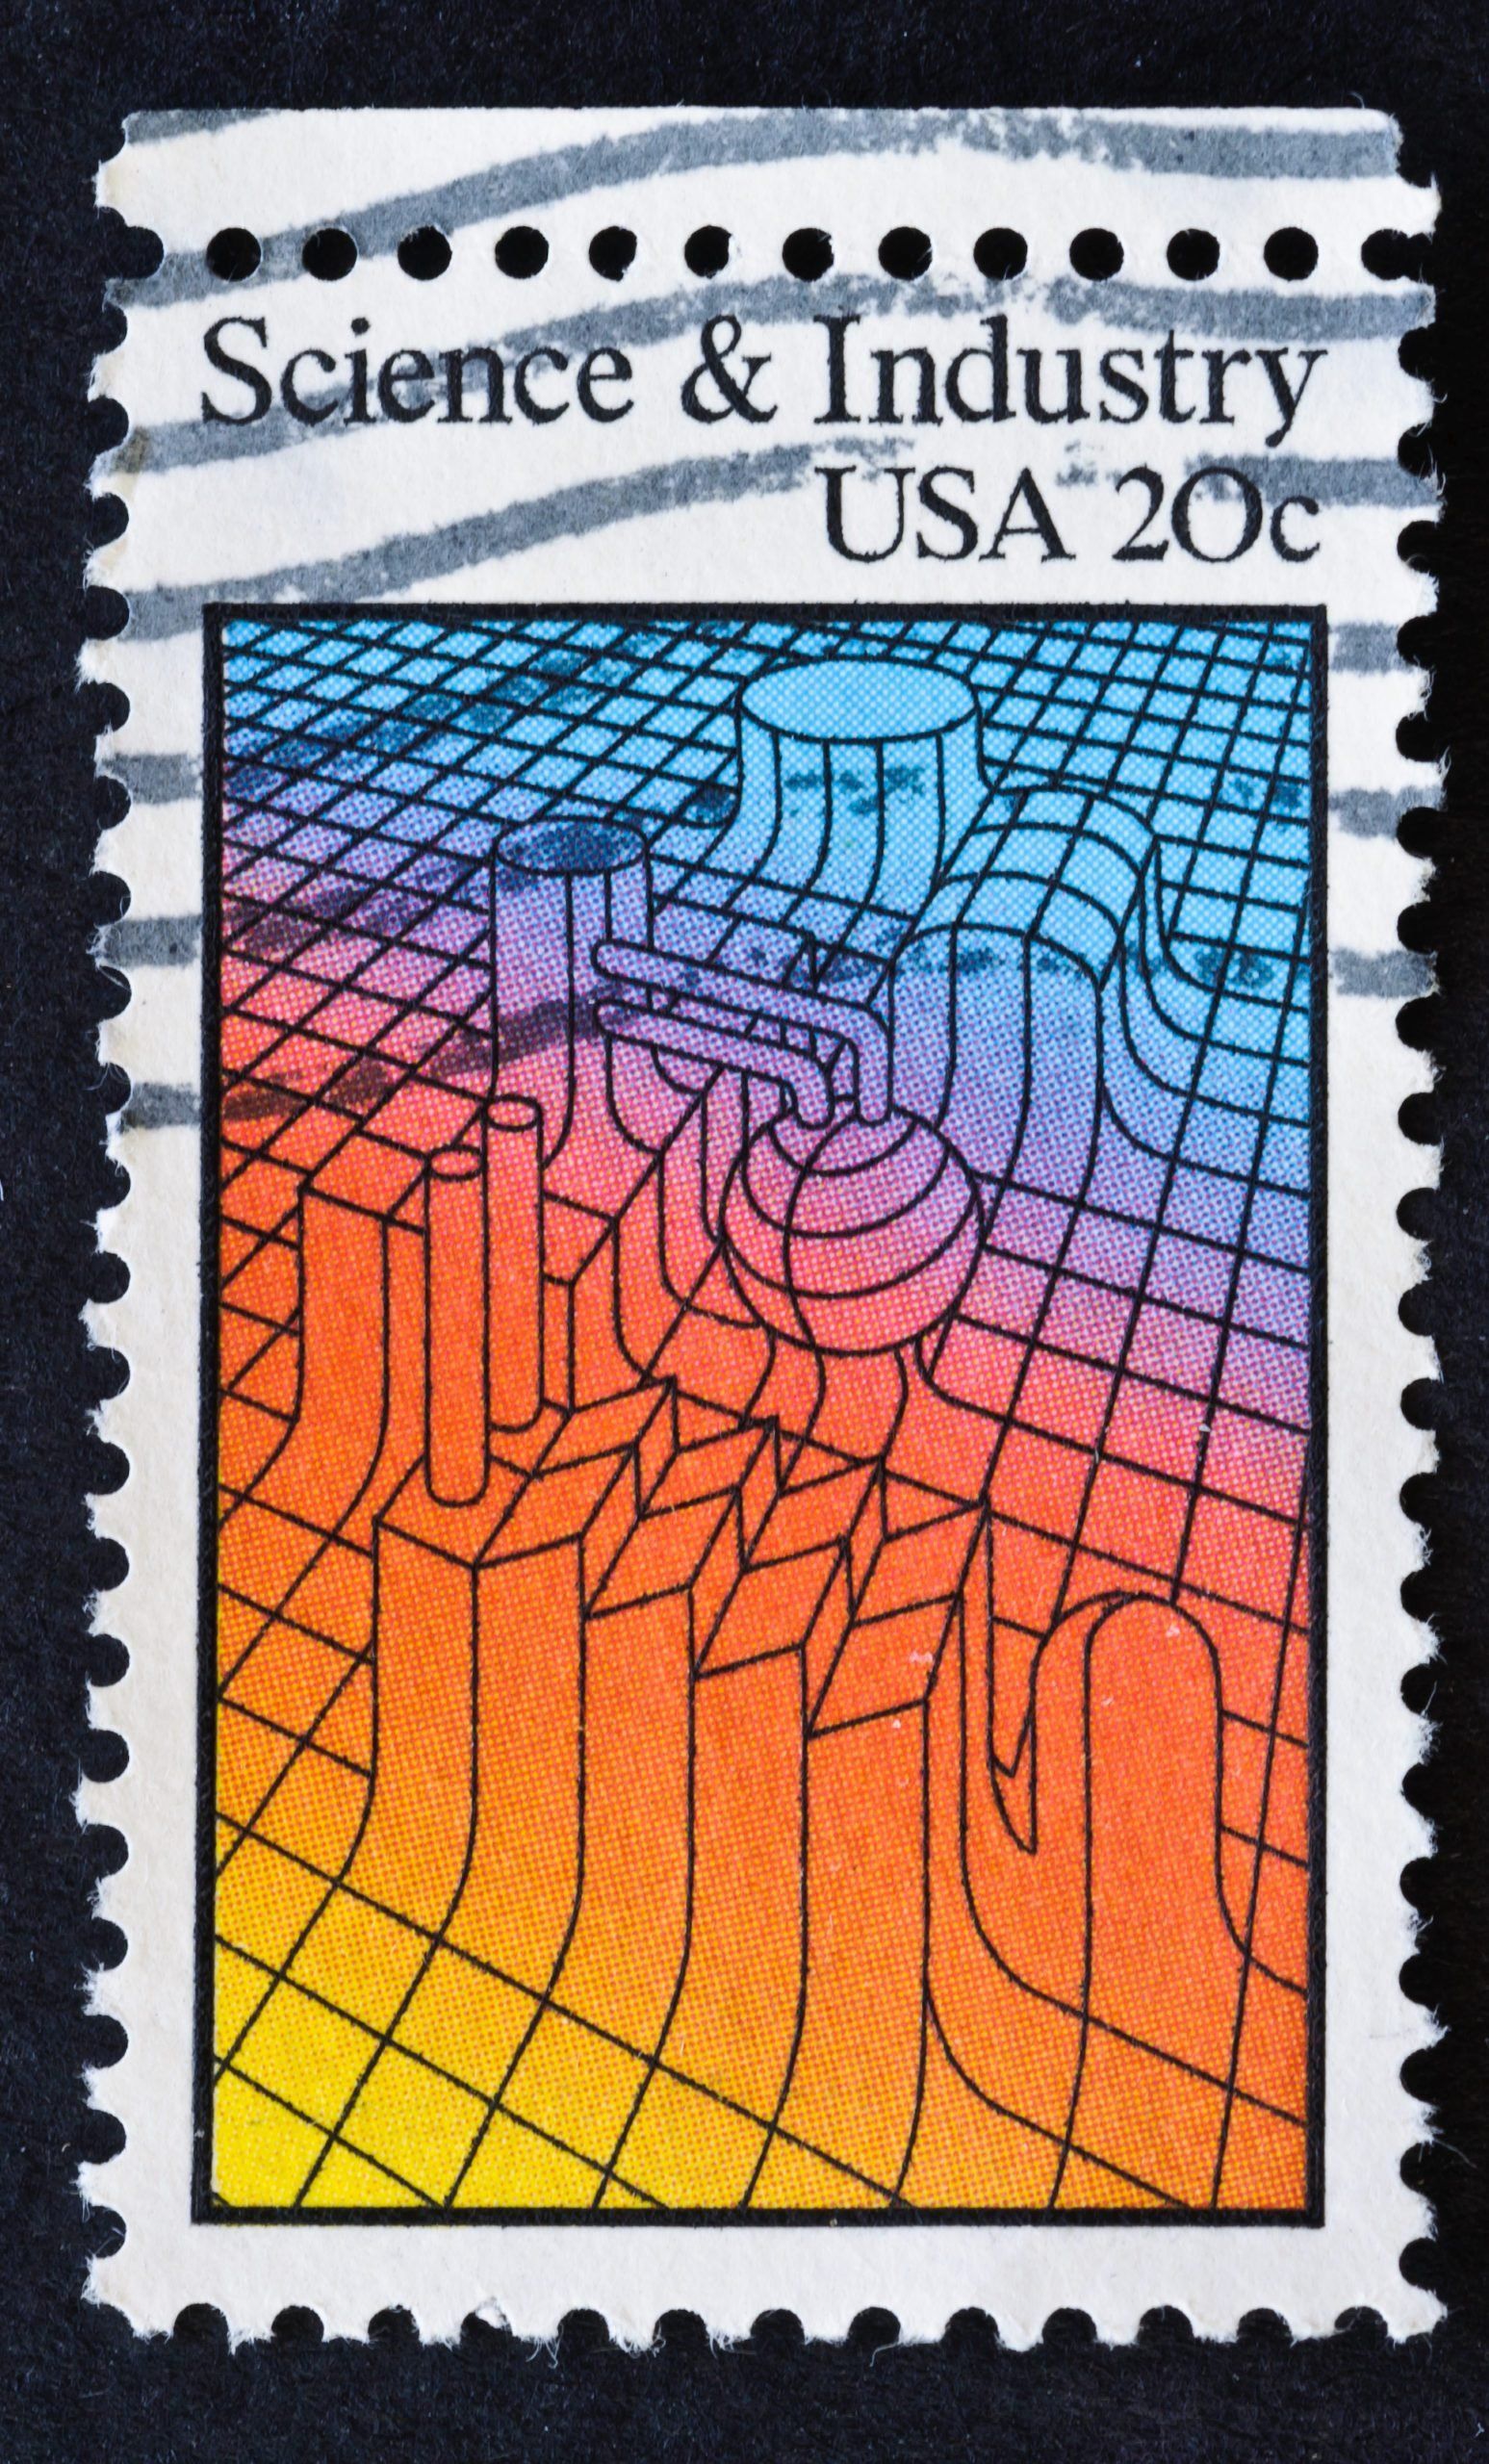 Science & Industry Stamp